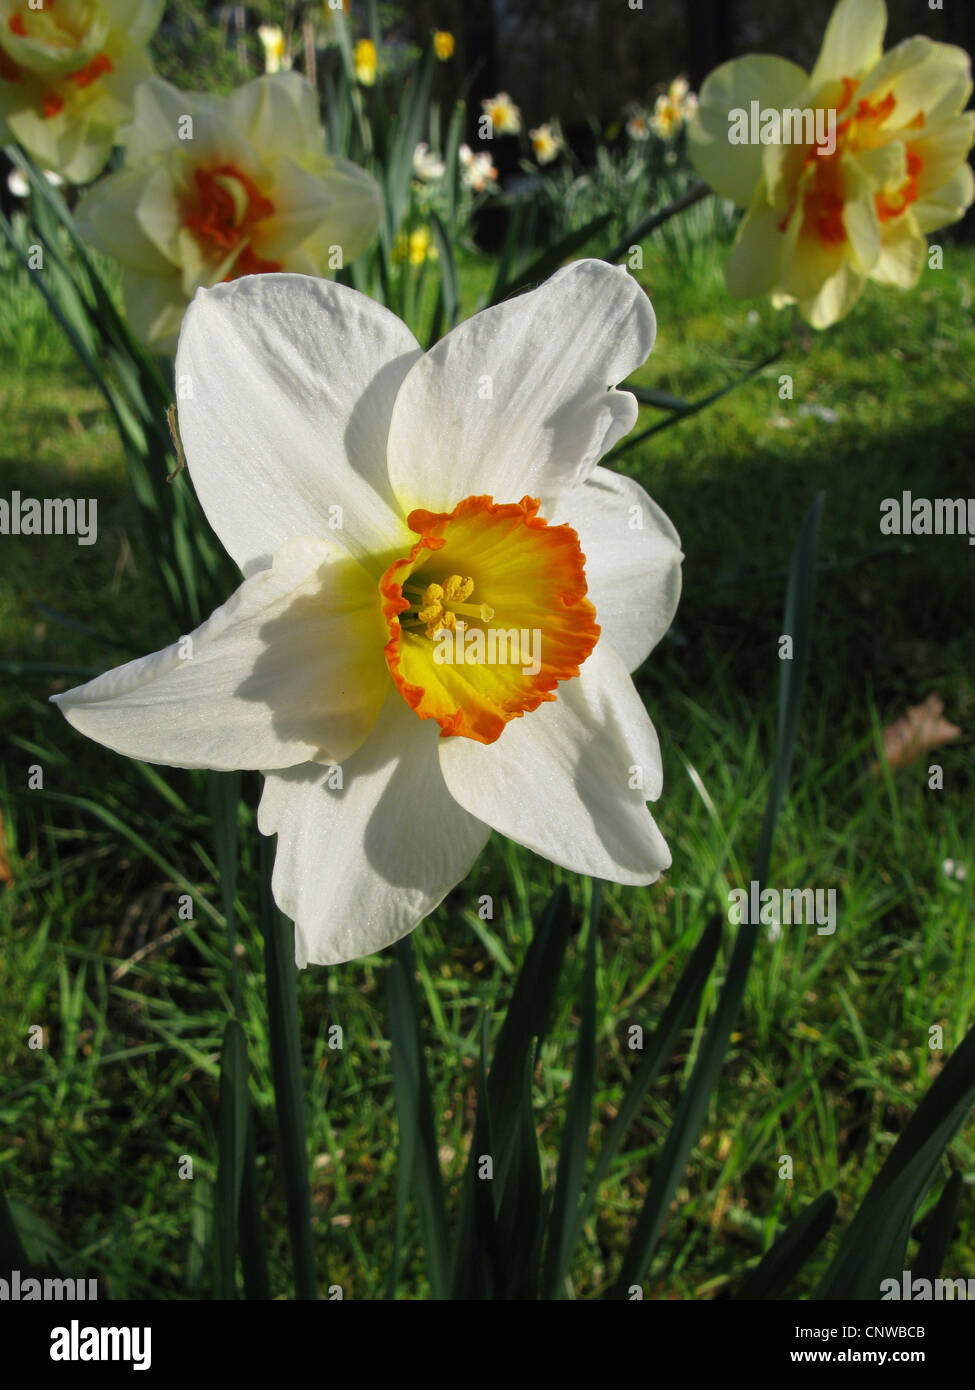 daffodil (Narcissus Flower Record, Narcissus 'Flower Record'), large-cupped daffodil, cultivar Flower Record - Stock Image